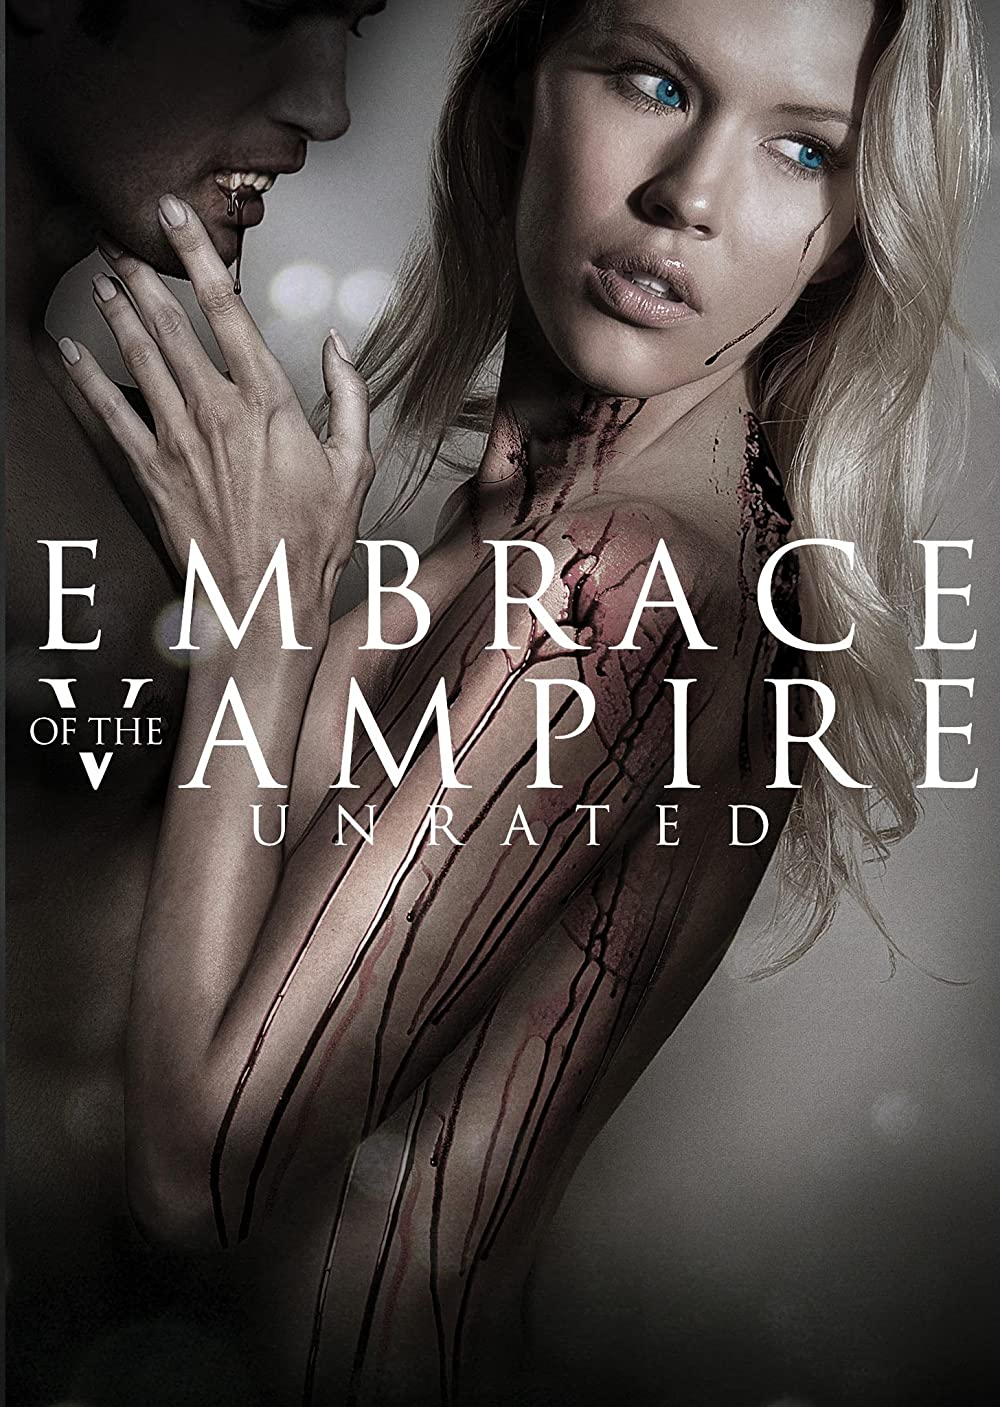 18+ Embrace of the Vampire 2013 English 1080p BluRay ESubs 1.2GB x264 AAC